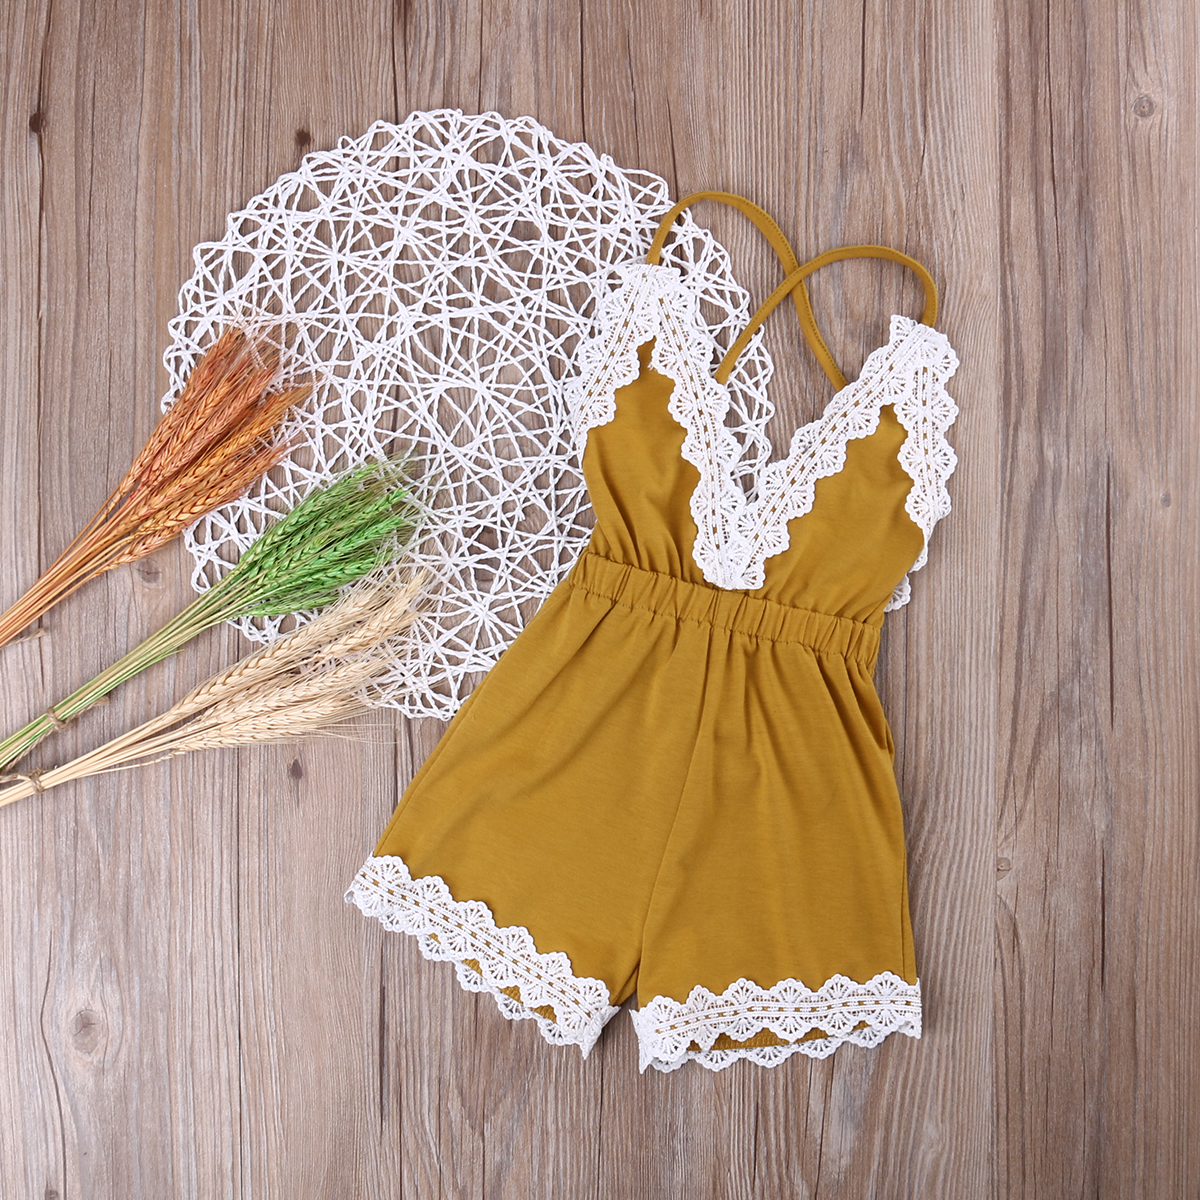 Adorable Newborn Baby Girls Clothing Romper Sleeveless Backless V Neck Jumpsuit Flower Outfits Clothes New